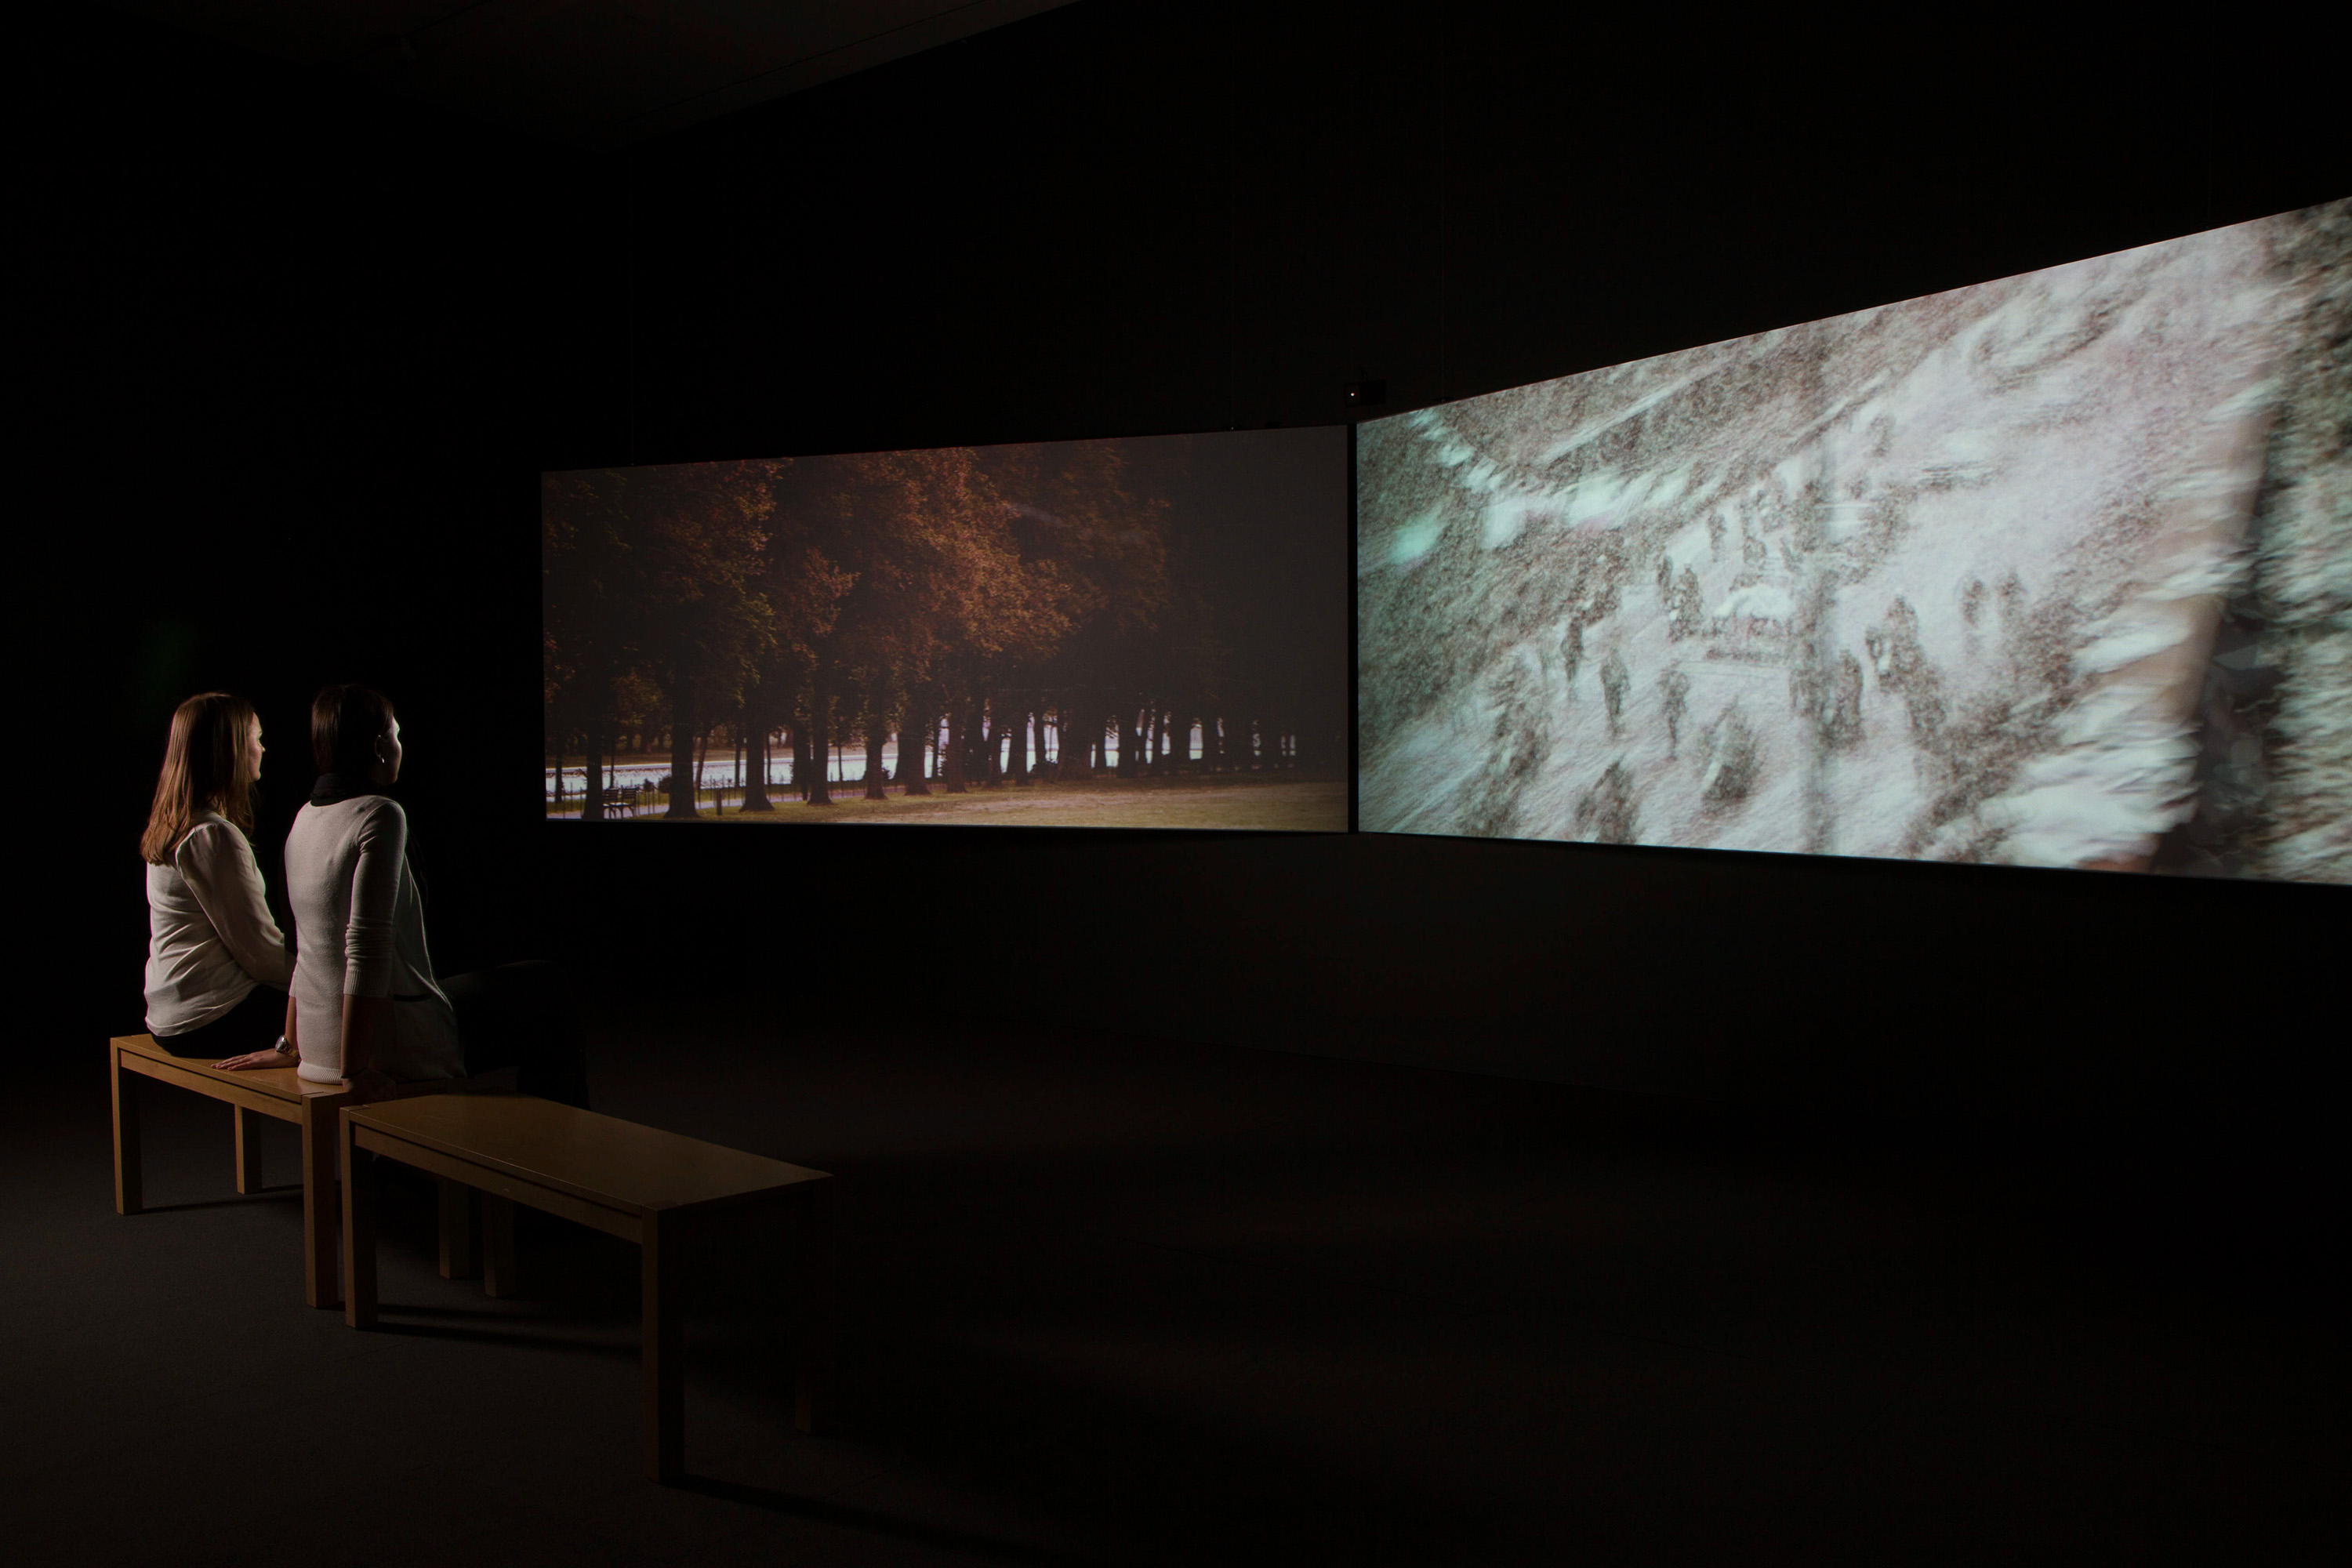 <i>John Akomfrah: Imaginary Possessions</i>, installation view at the Eli and Edythe Broad Art Museum at Michigan State University, 2014. Photo: Eat Pomegranate Photography